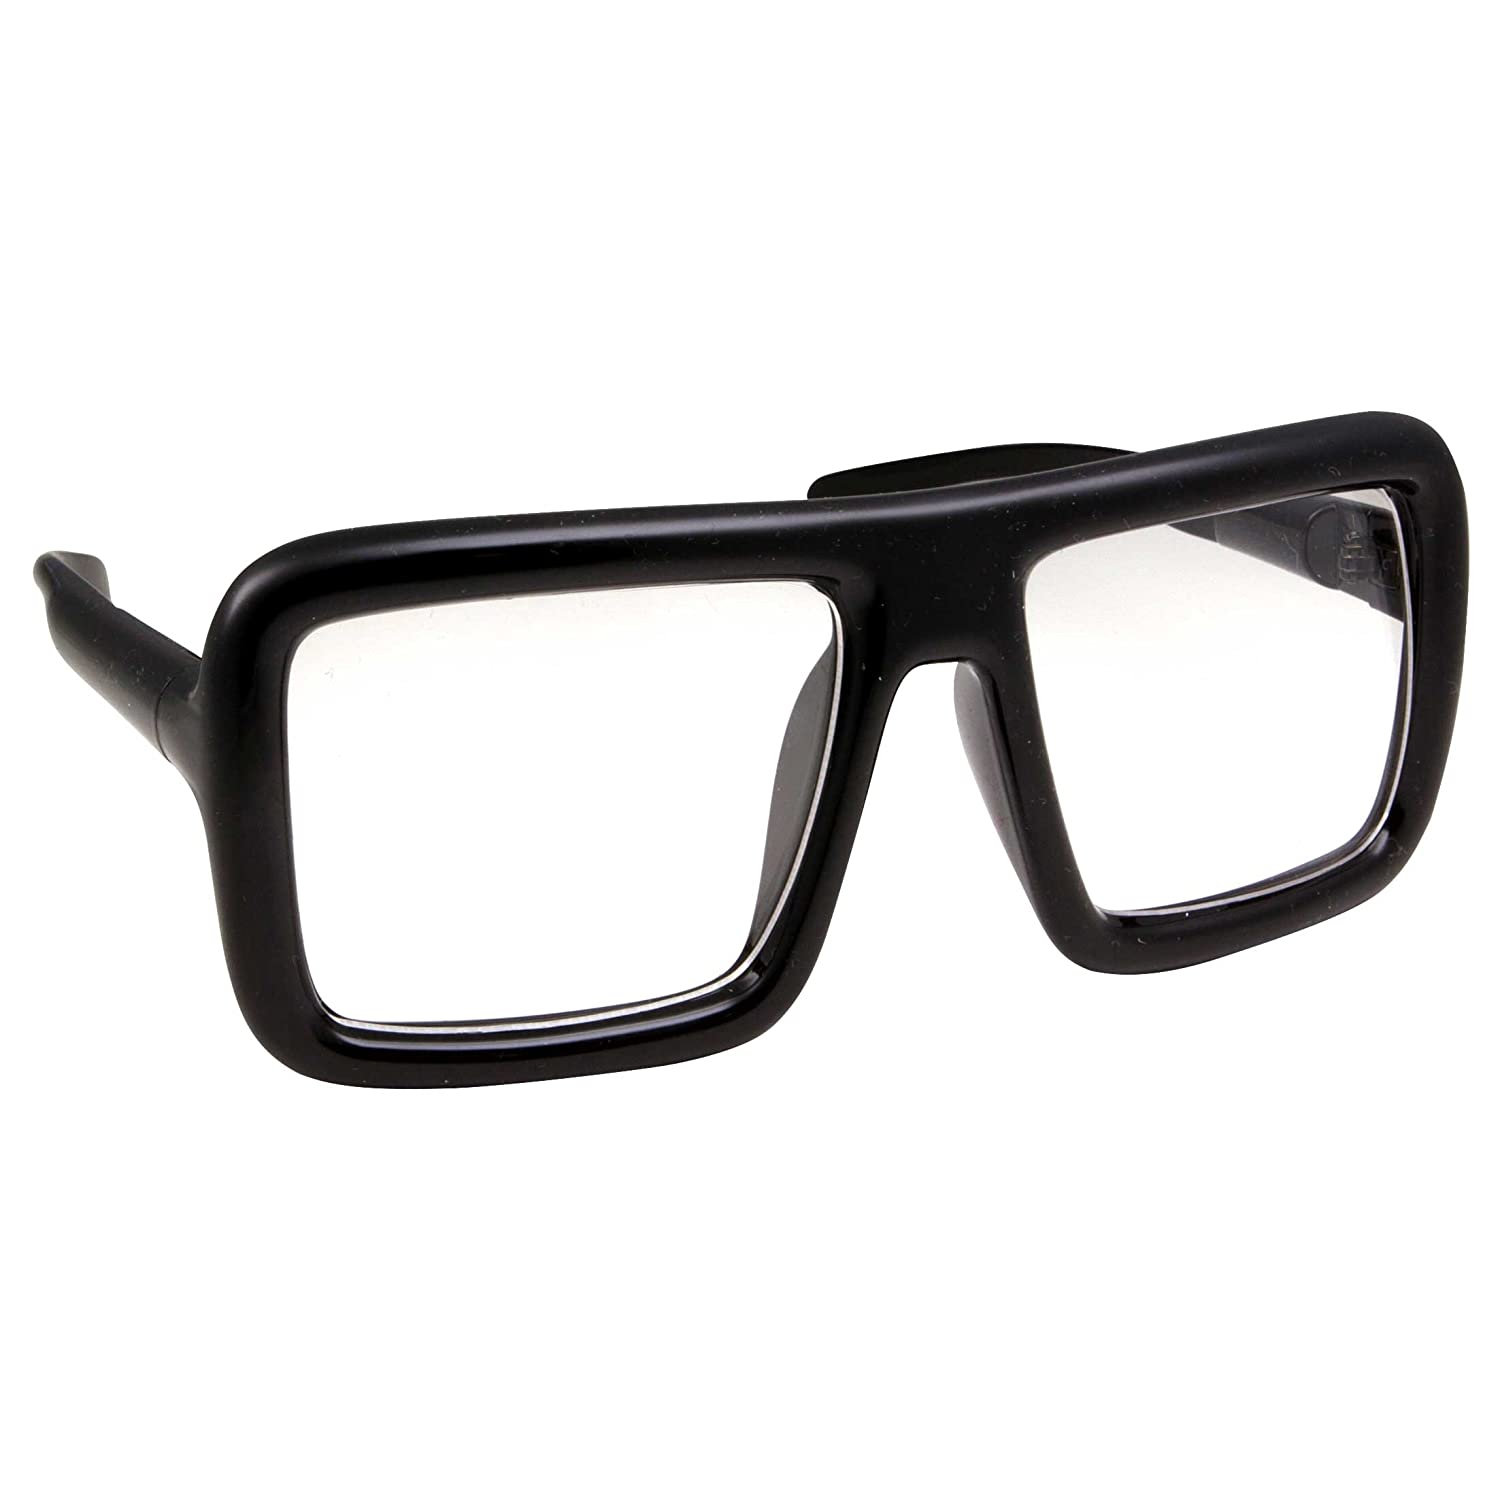 5b430389f9f6 Amazon.com: Thick Square Frame Clear Lens Glasses Eyeglasses Super Oversized  Fashion and Costume - Black: Clothing